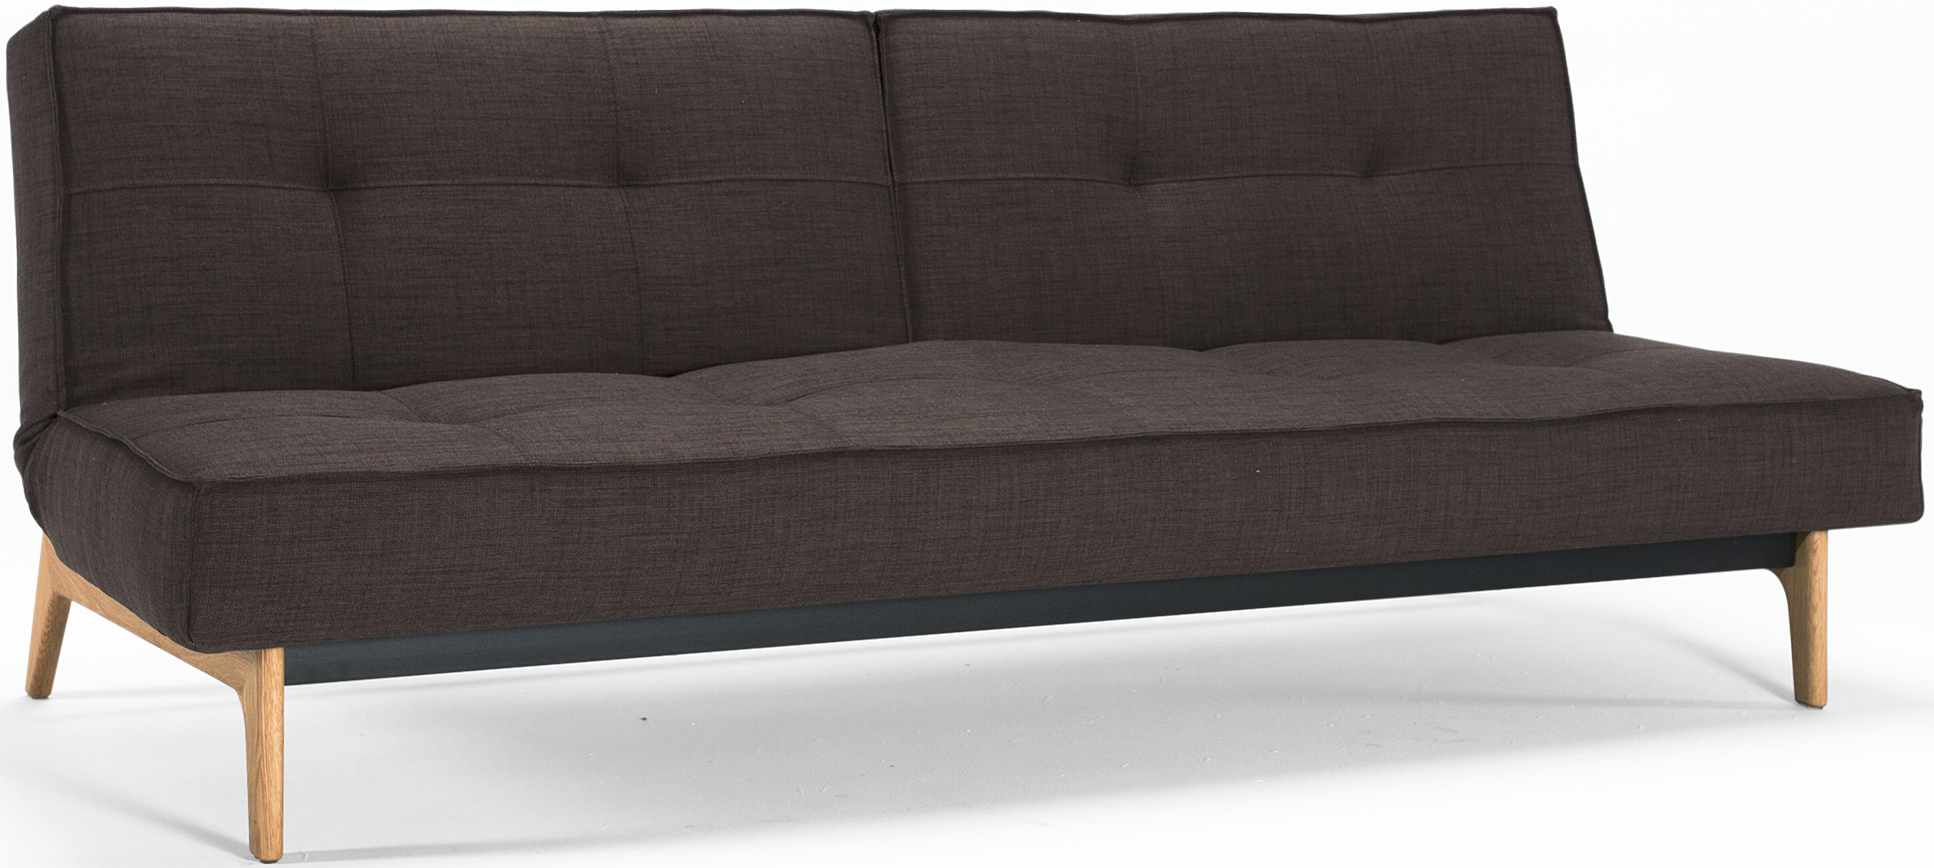 innovation splitback sofa eik 503